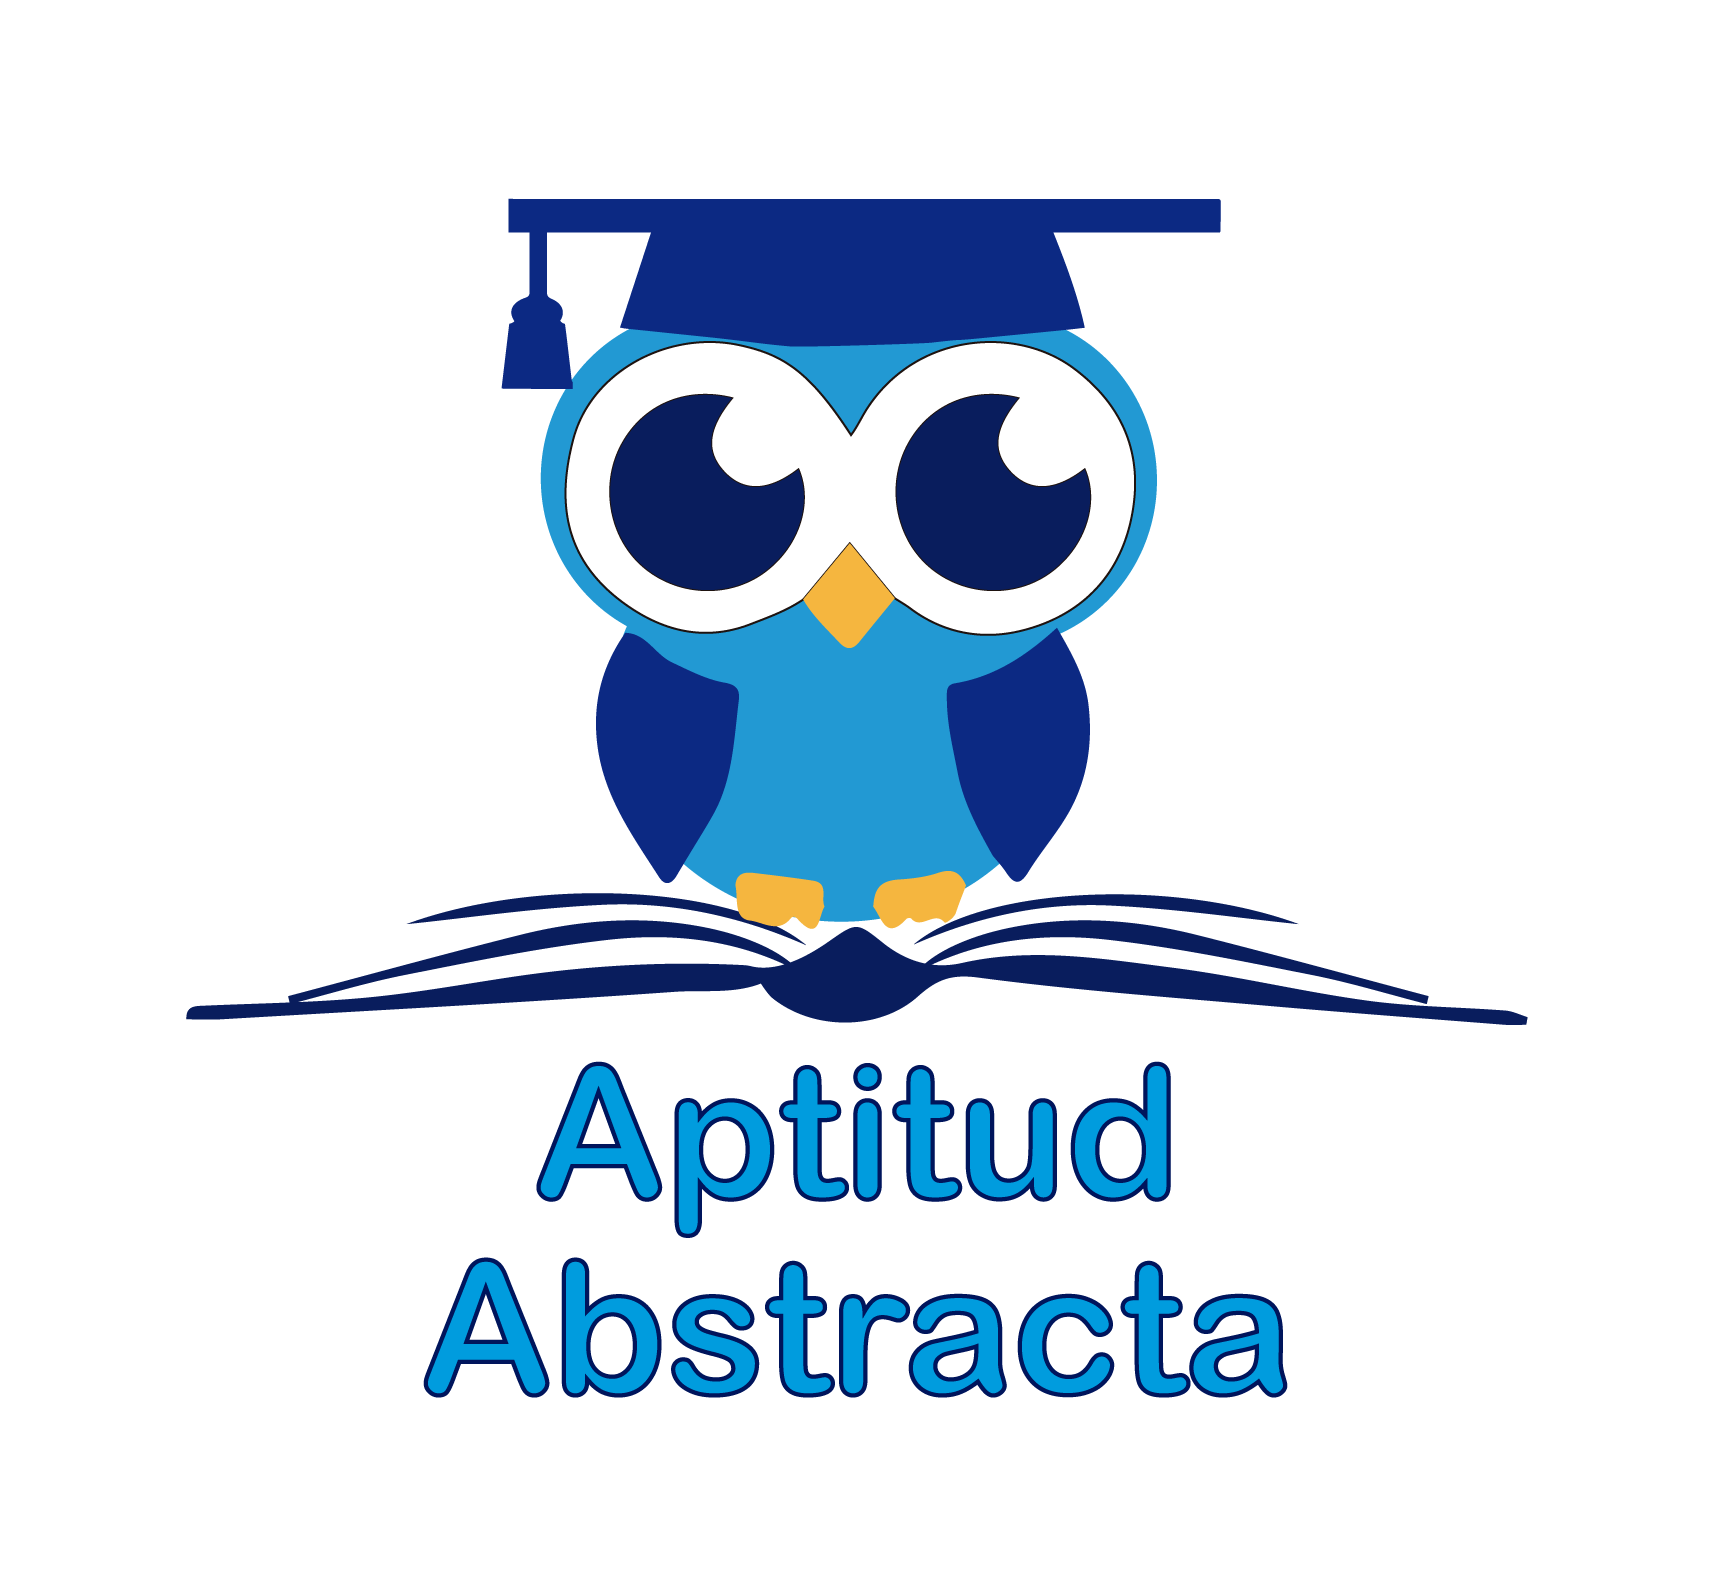 Aptitud Abstracta